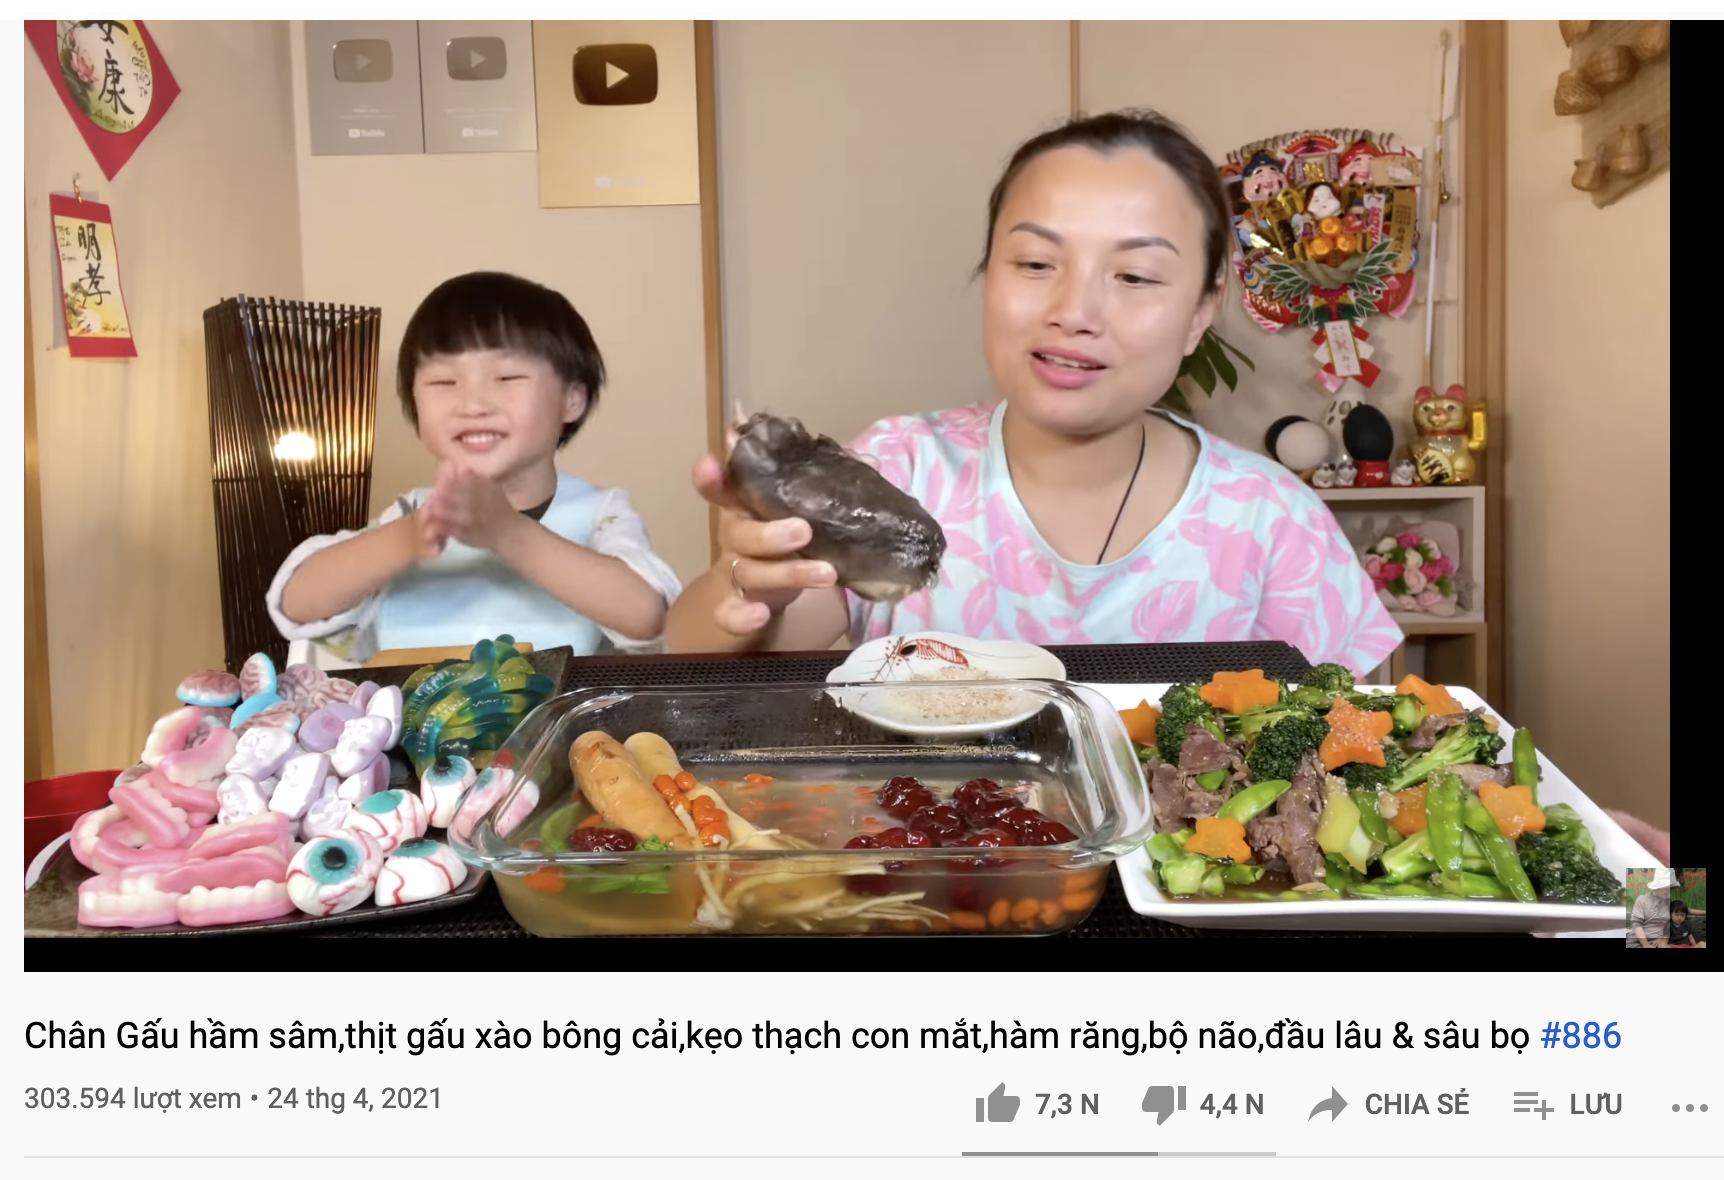 Quynh Tran JP made a direct move to the clip to eat offensive bear feet, according to Internet users: - Photo 1.